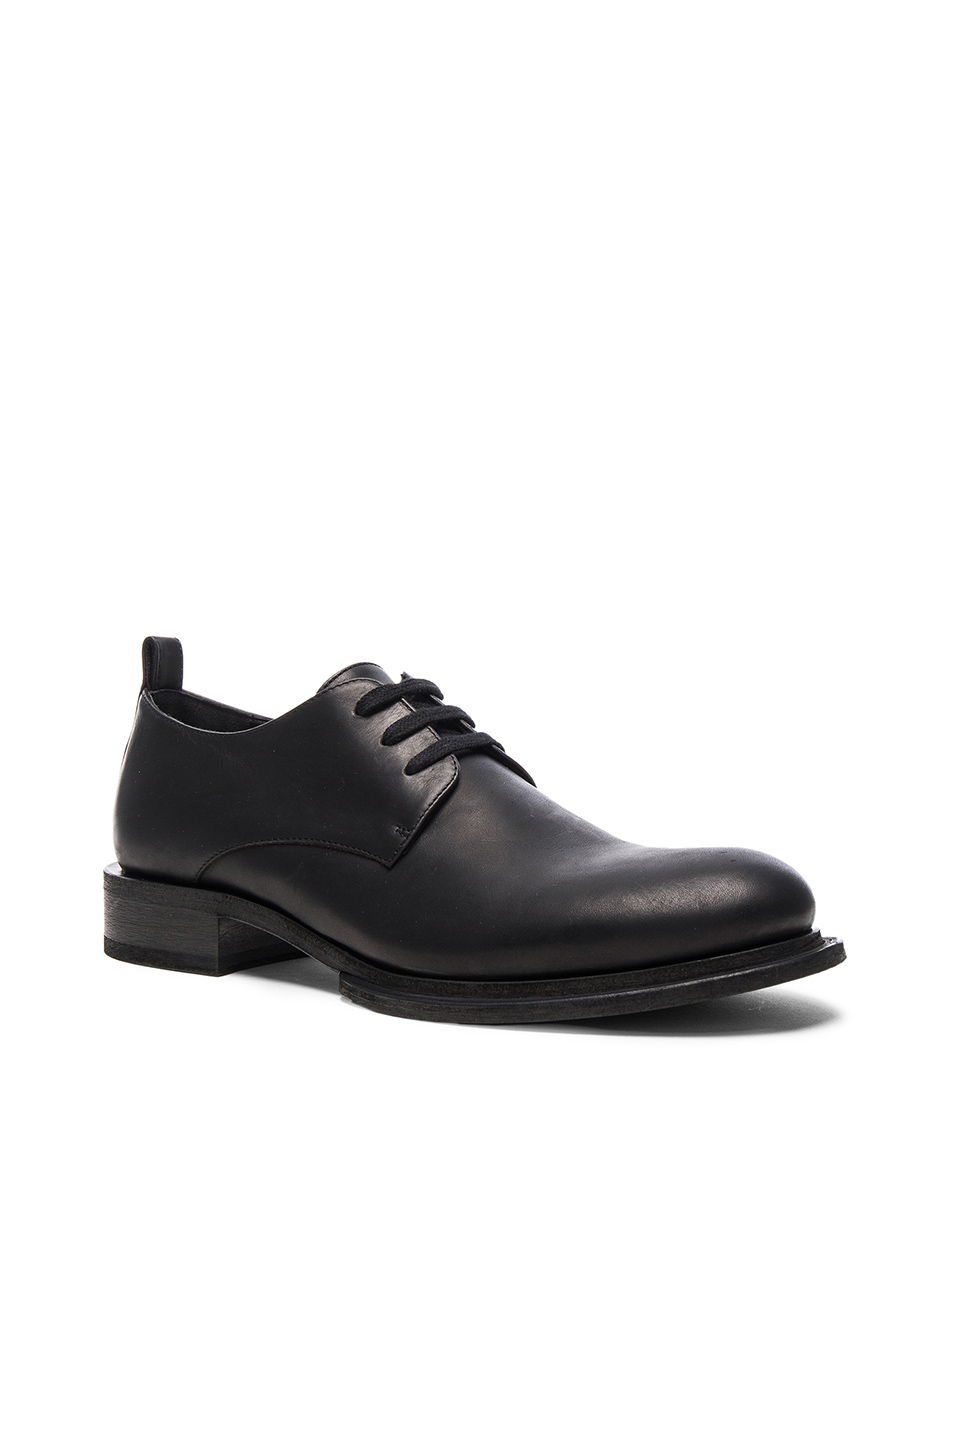 ANN DEMEULEMEESTER Leather Loafers mGATSy0